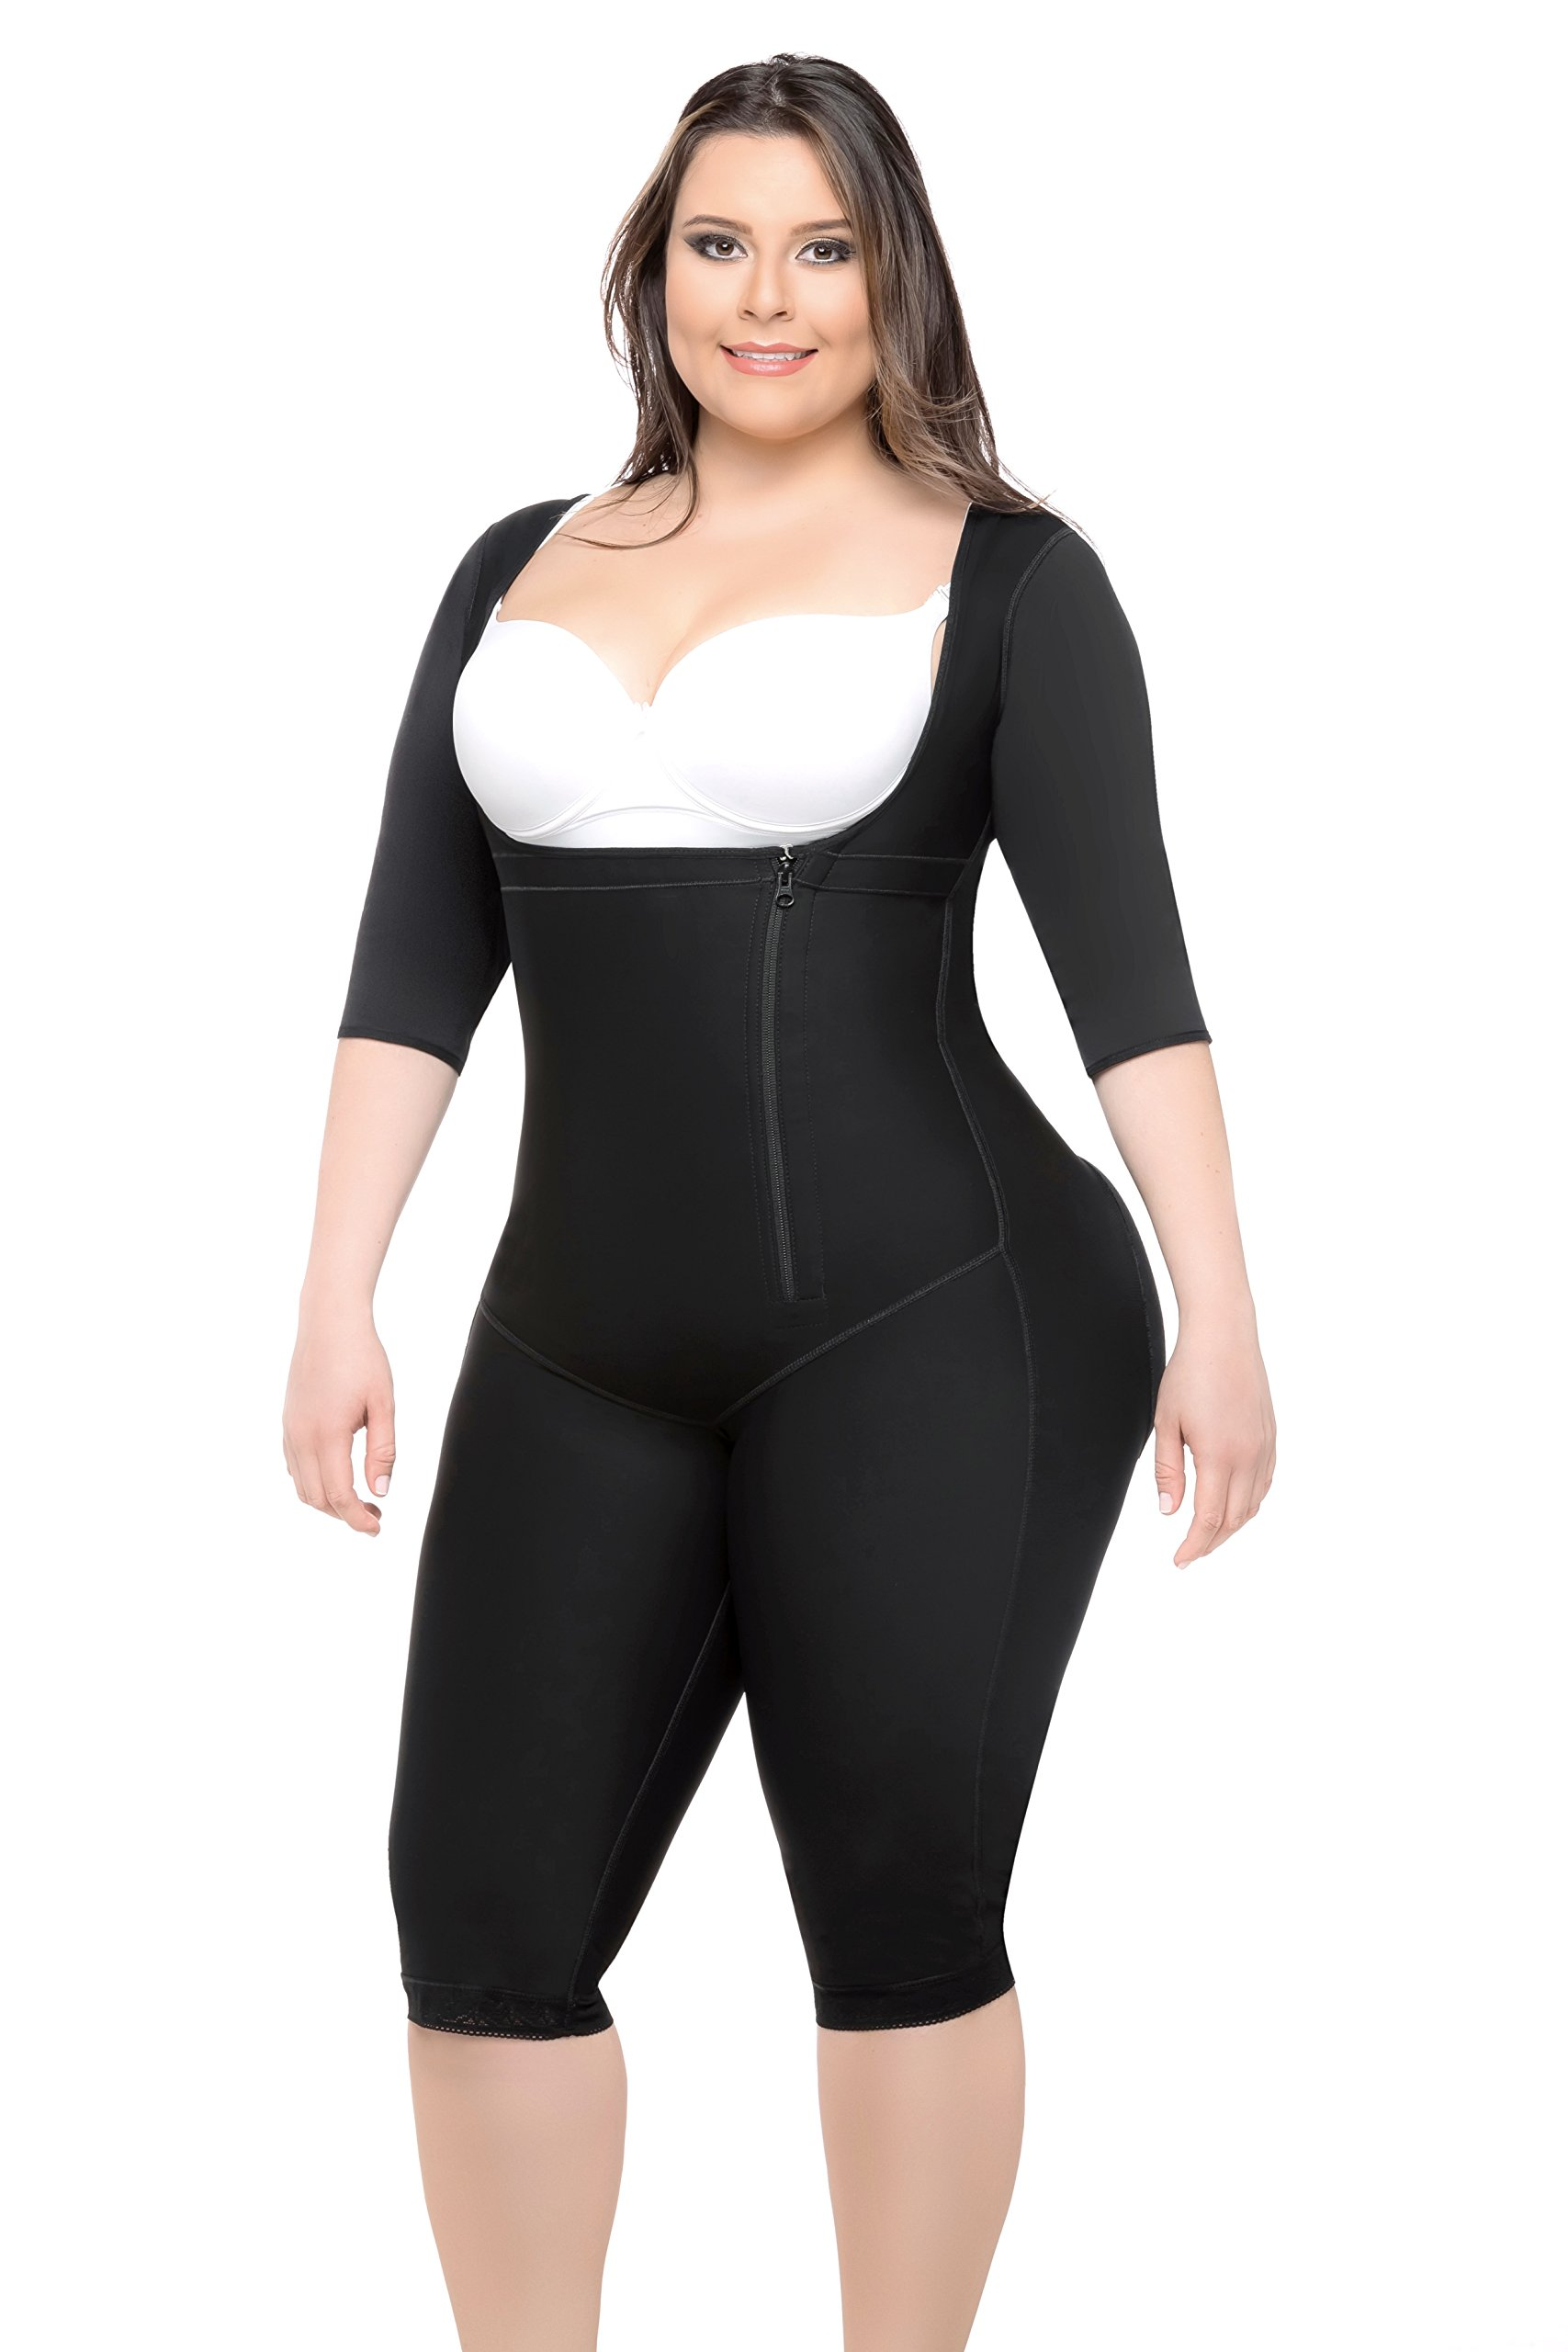 Fajas Colombianas Full Body Shaper With Sleeves & Butt Lifter Knee Length Style